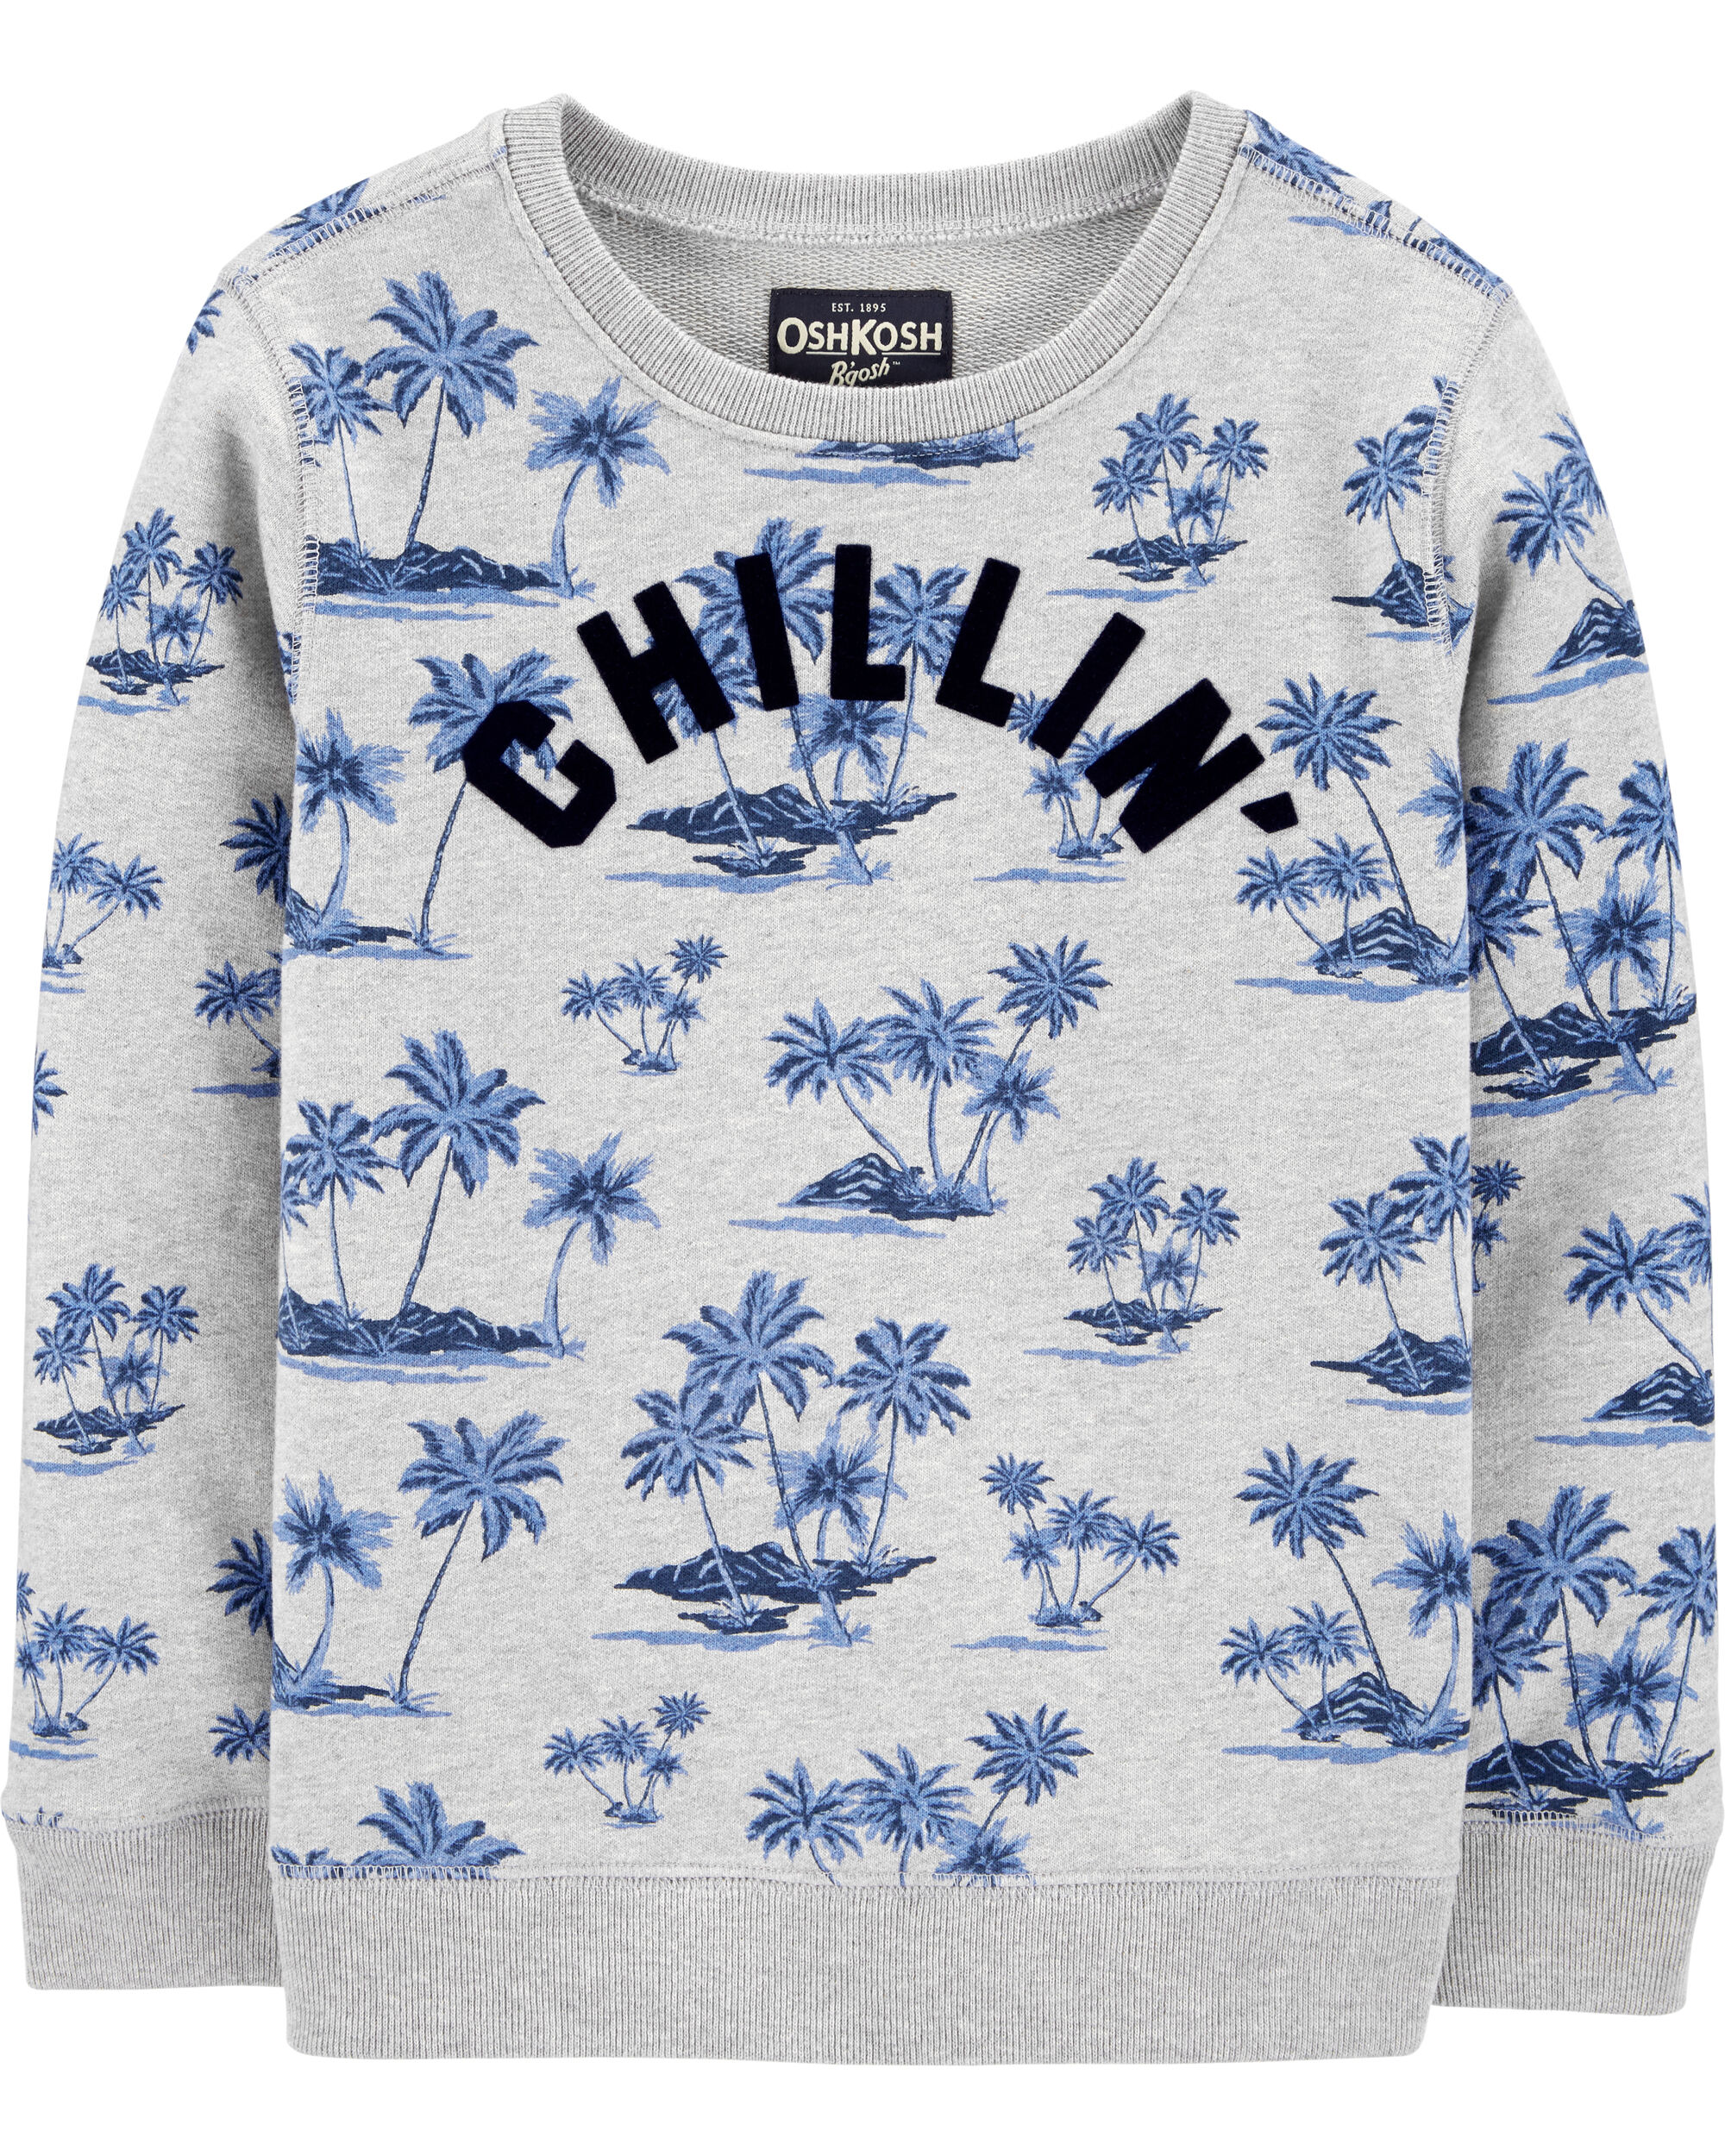 Crew Neck Chillin' Sweatshirt